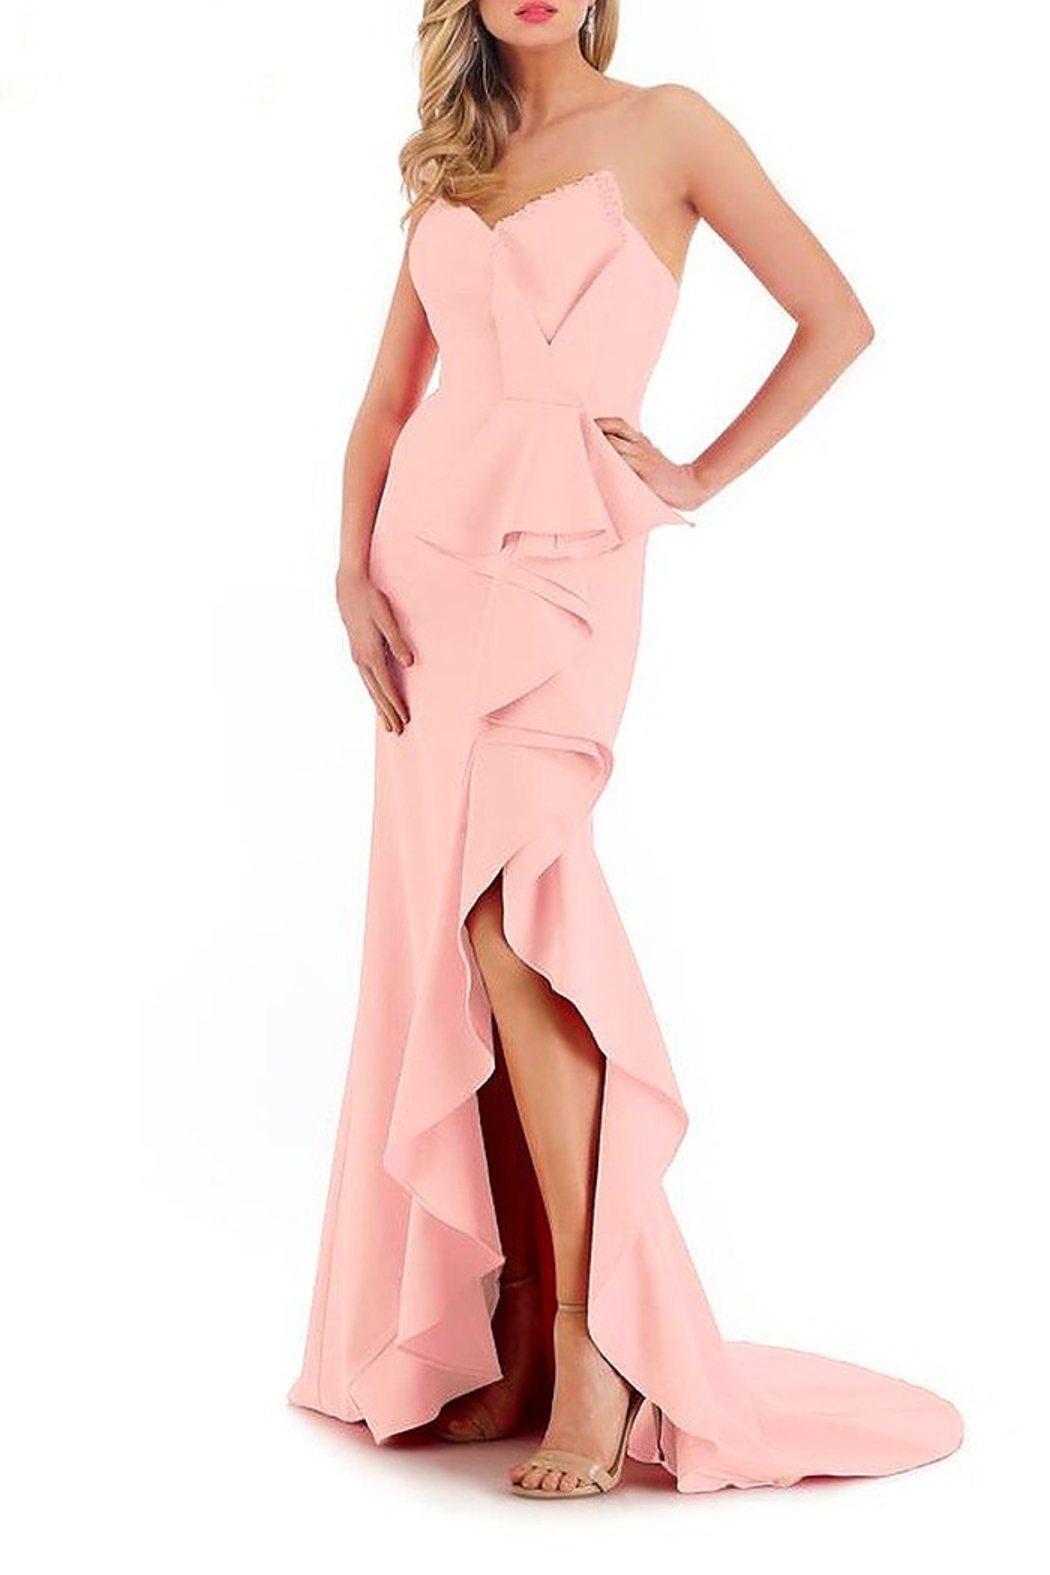 Morrell Maxie Strapless Ruffle Front Gown - Main Image